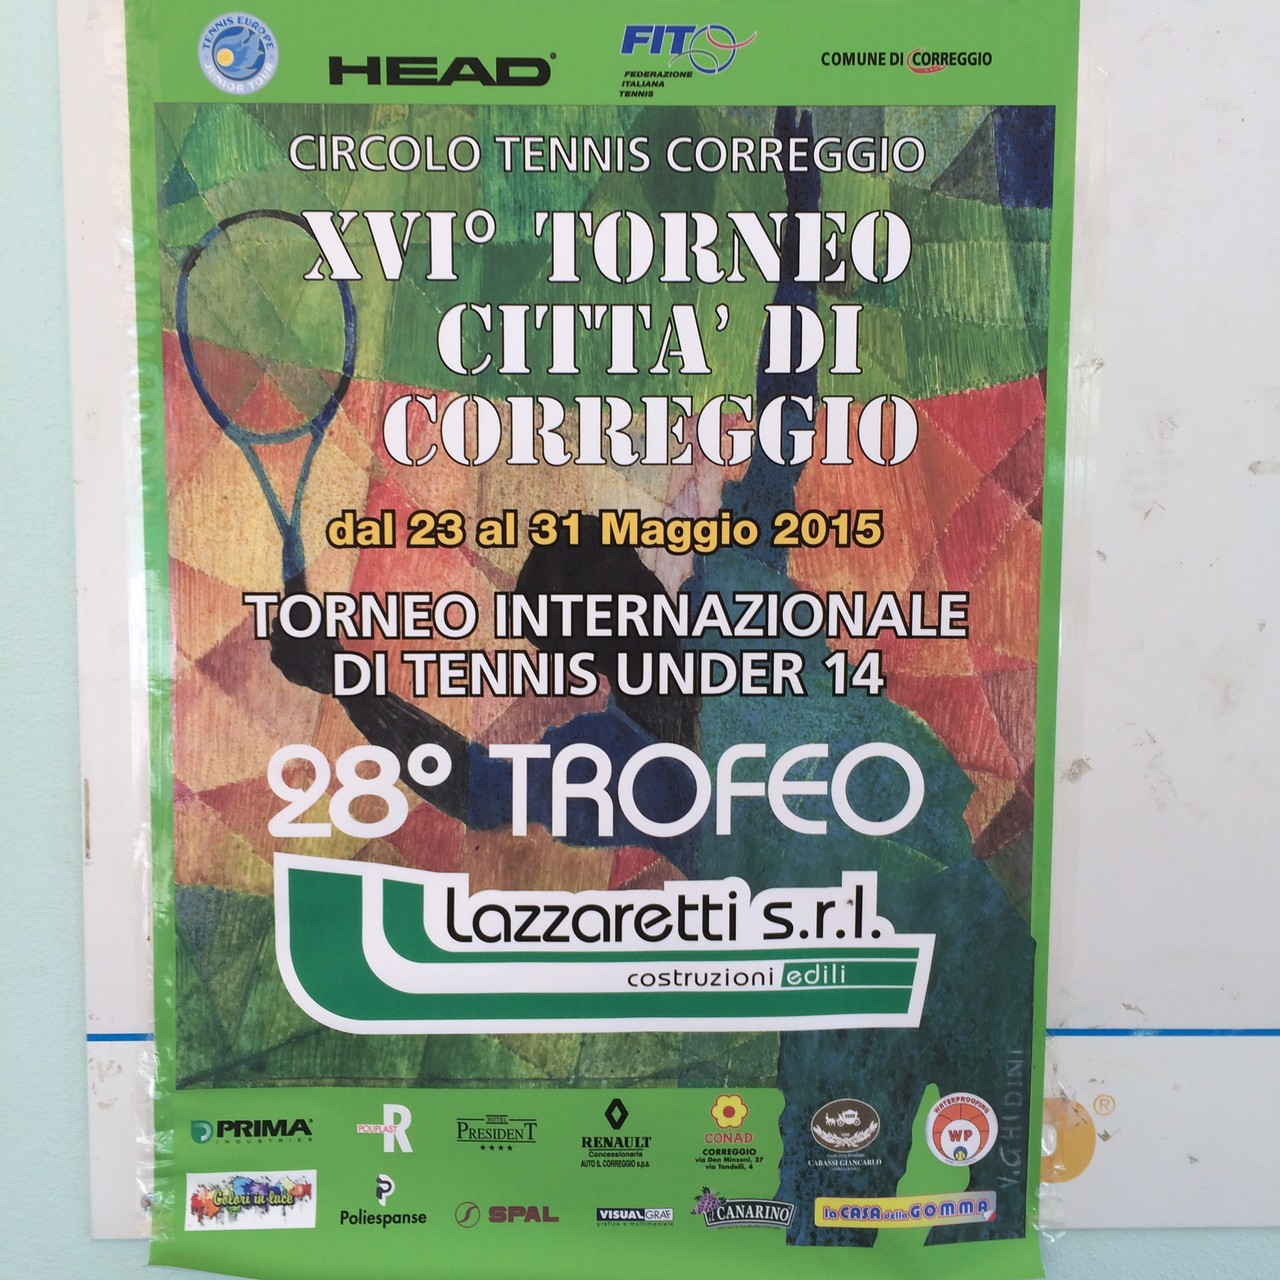 Torneo Internationale Citta di Correggio under 14